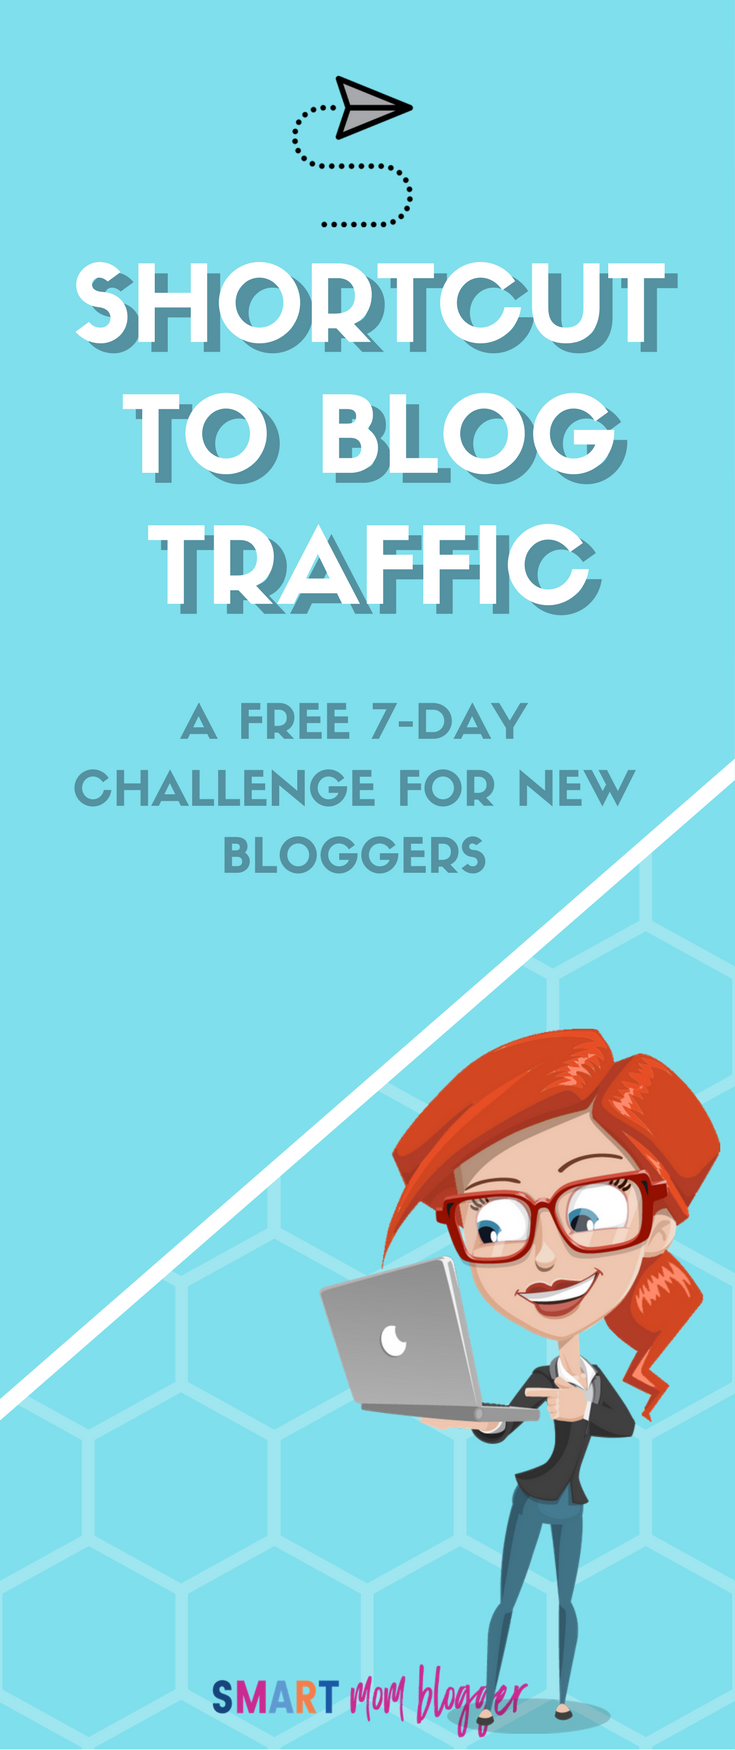 Figuring out how to get traffic to a new blog is so freaking hard! Love this challenge where she shows you a SYSTEM you can use to get tons of free traffic to your blog on autopilot.